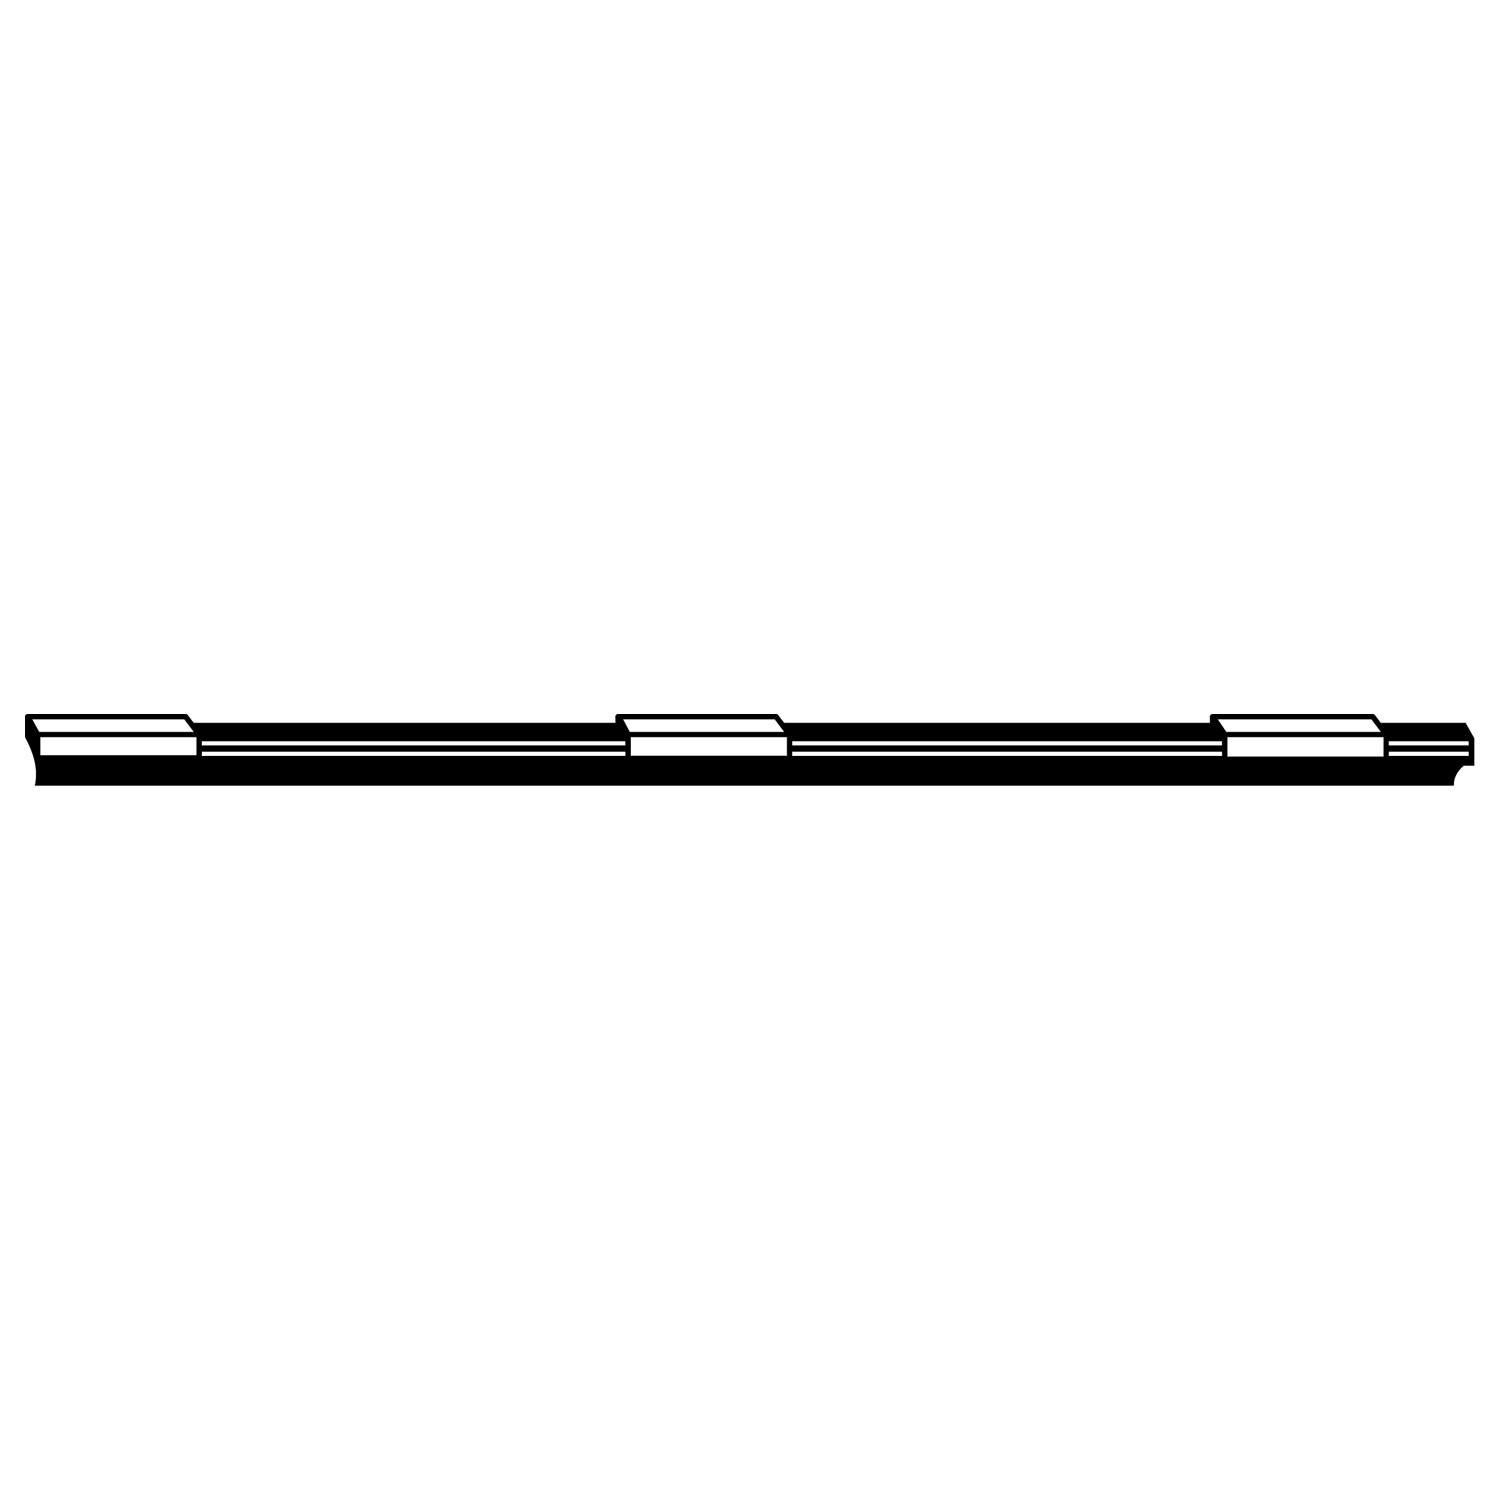 ACDELCO PROFESSIONAL - Performance Windshield Wiper Blade Refill - DCC 8-5207